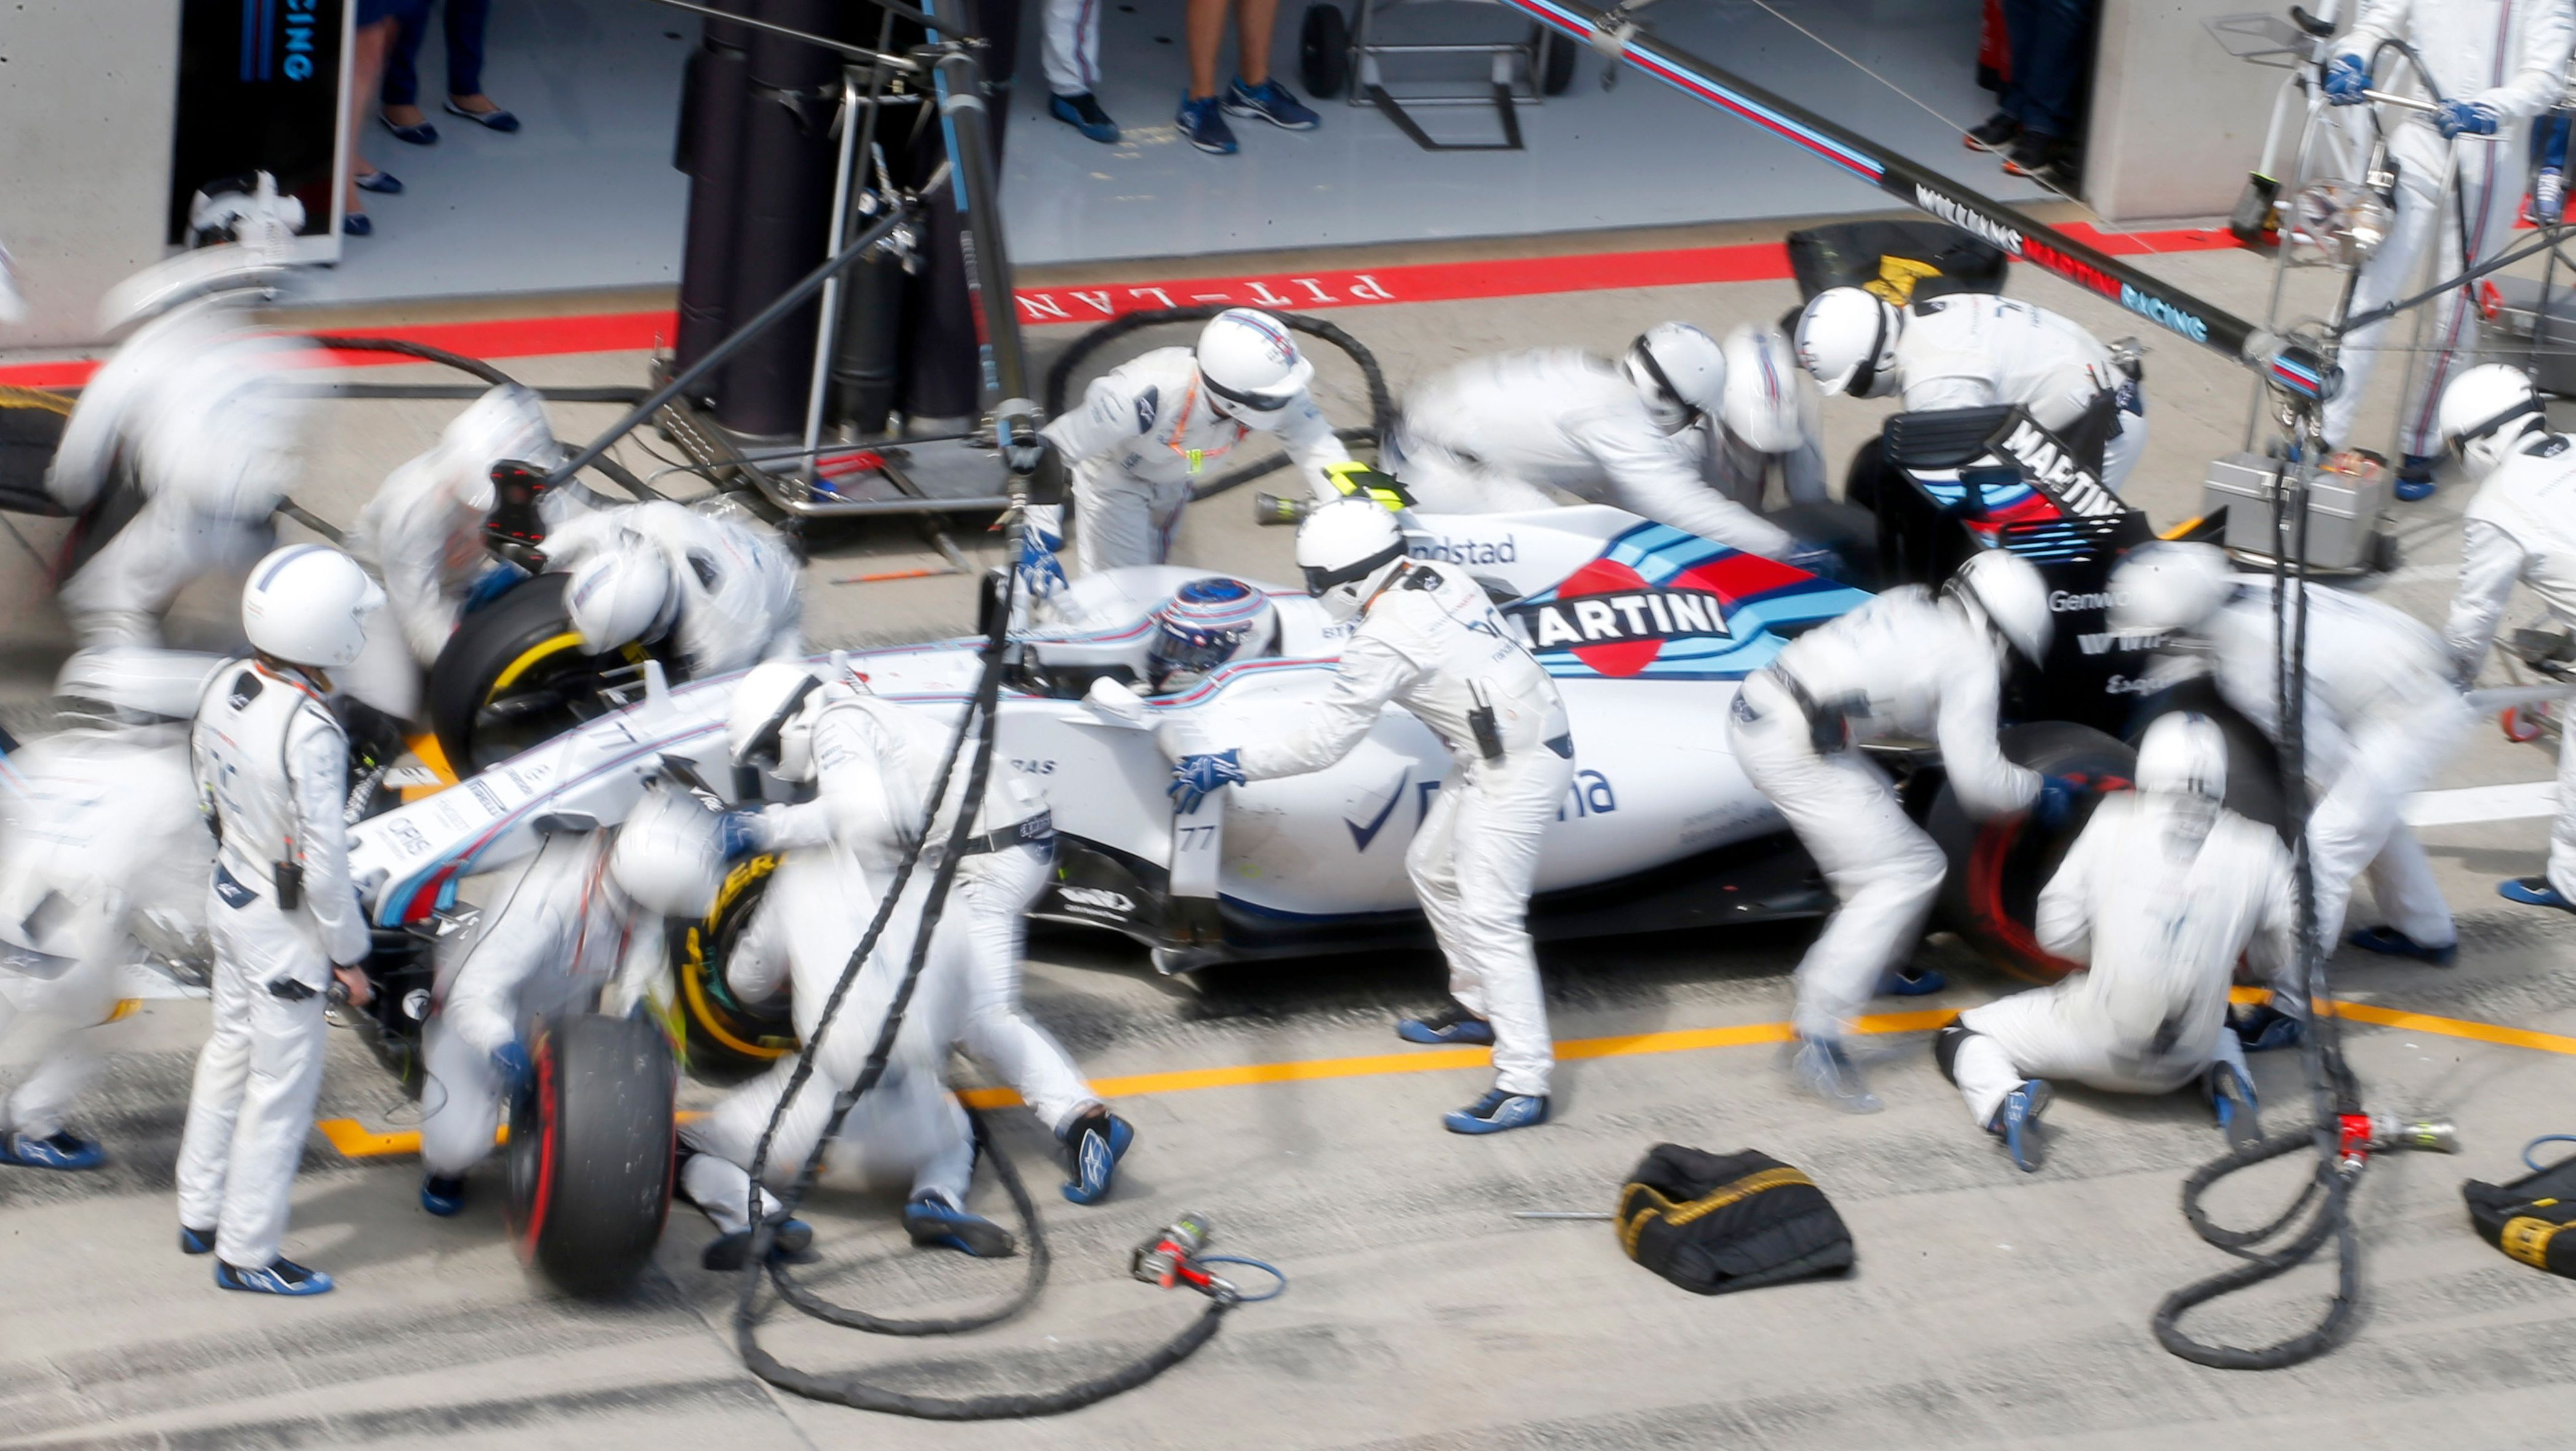 Williams Formula One driver Valtteri Bottas of Finland makes a pit stop.